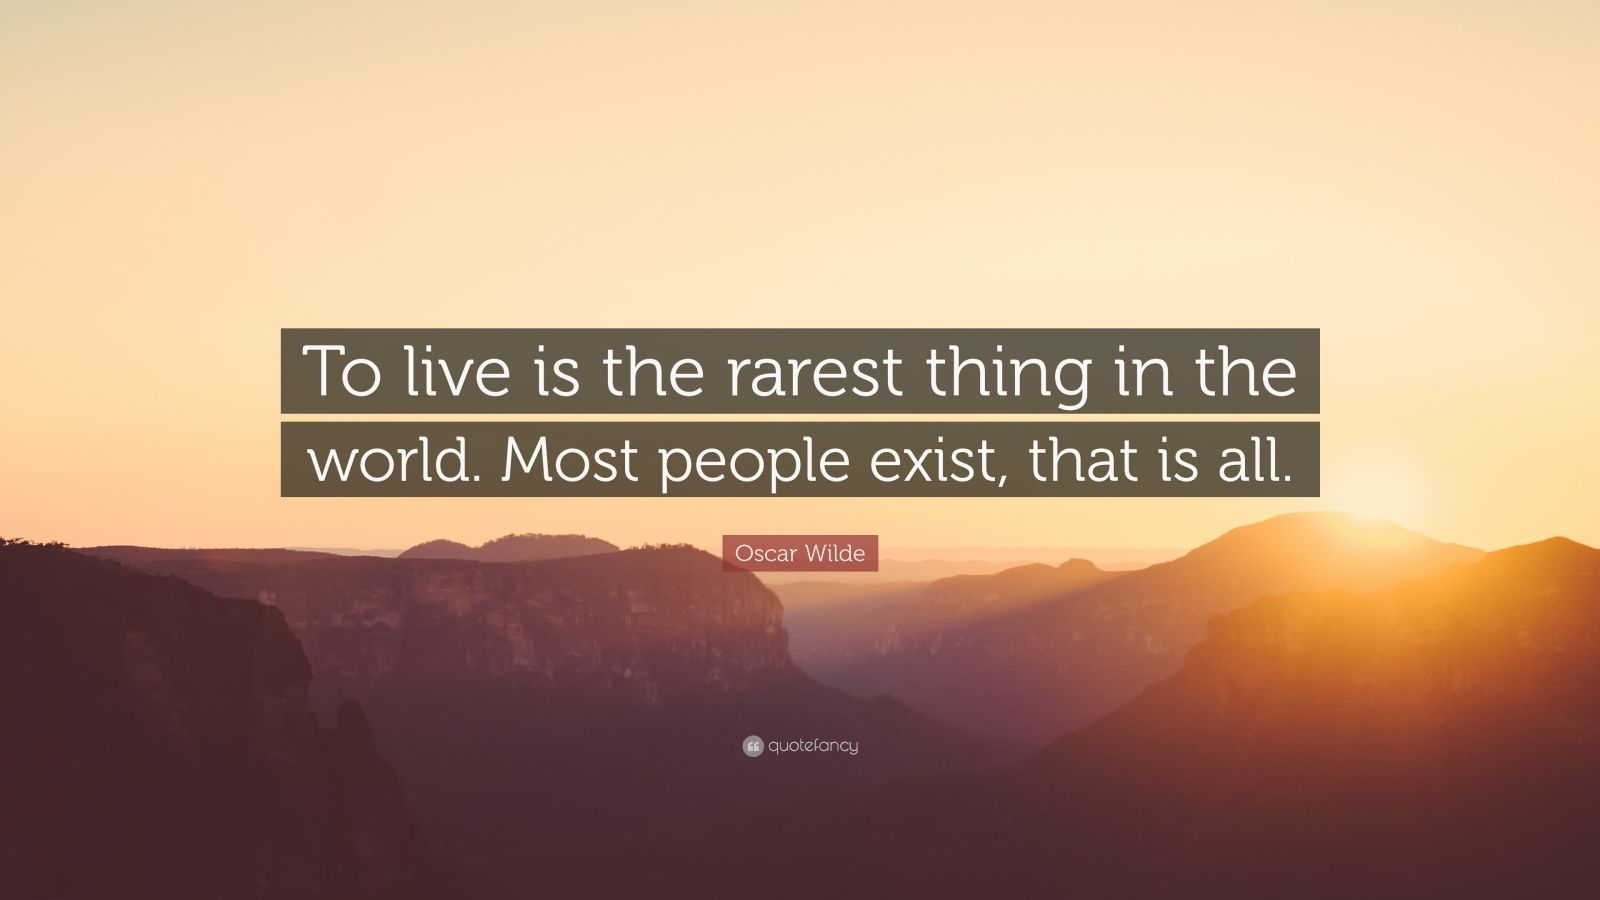 to live is the rarest thing in the world essay This is a short essay based of wilde s quotation hope you fine it interesting to live is the rarest thing in the world most people exist, that is all.